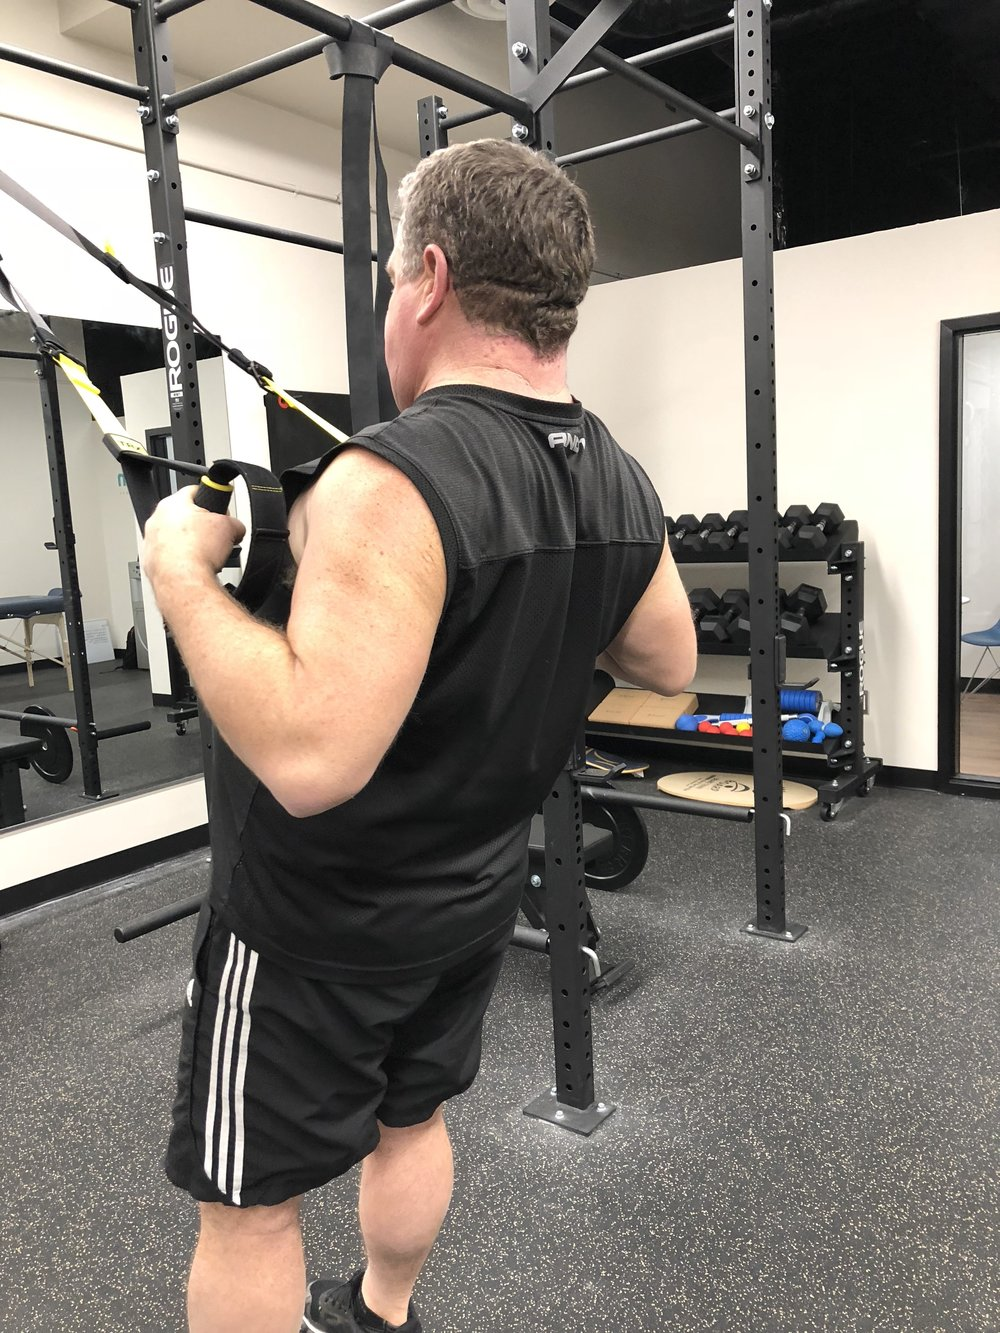 Jeff has turn out to be one of our more advanced lifters, in spite of a shoulder, neck and knee injury.